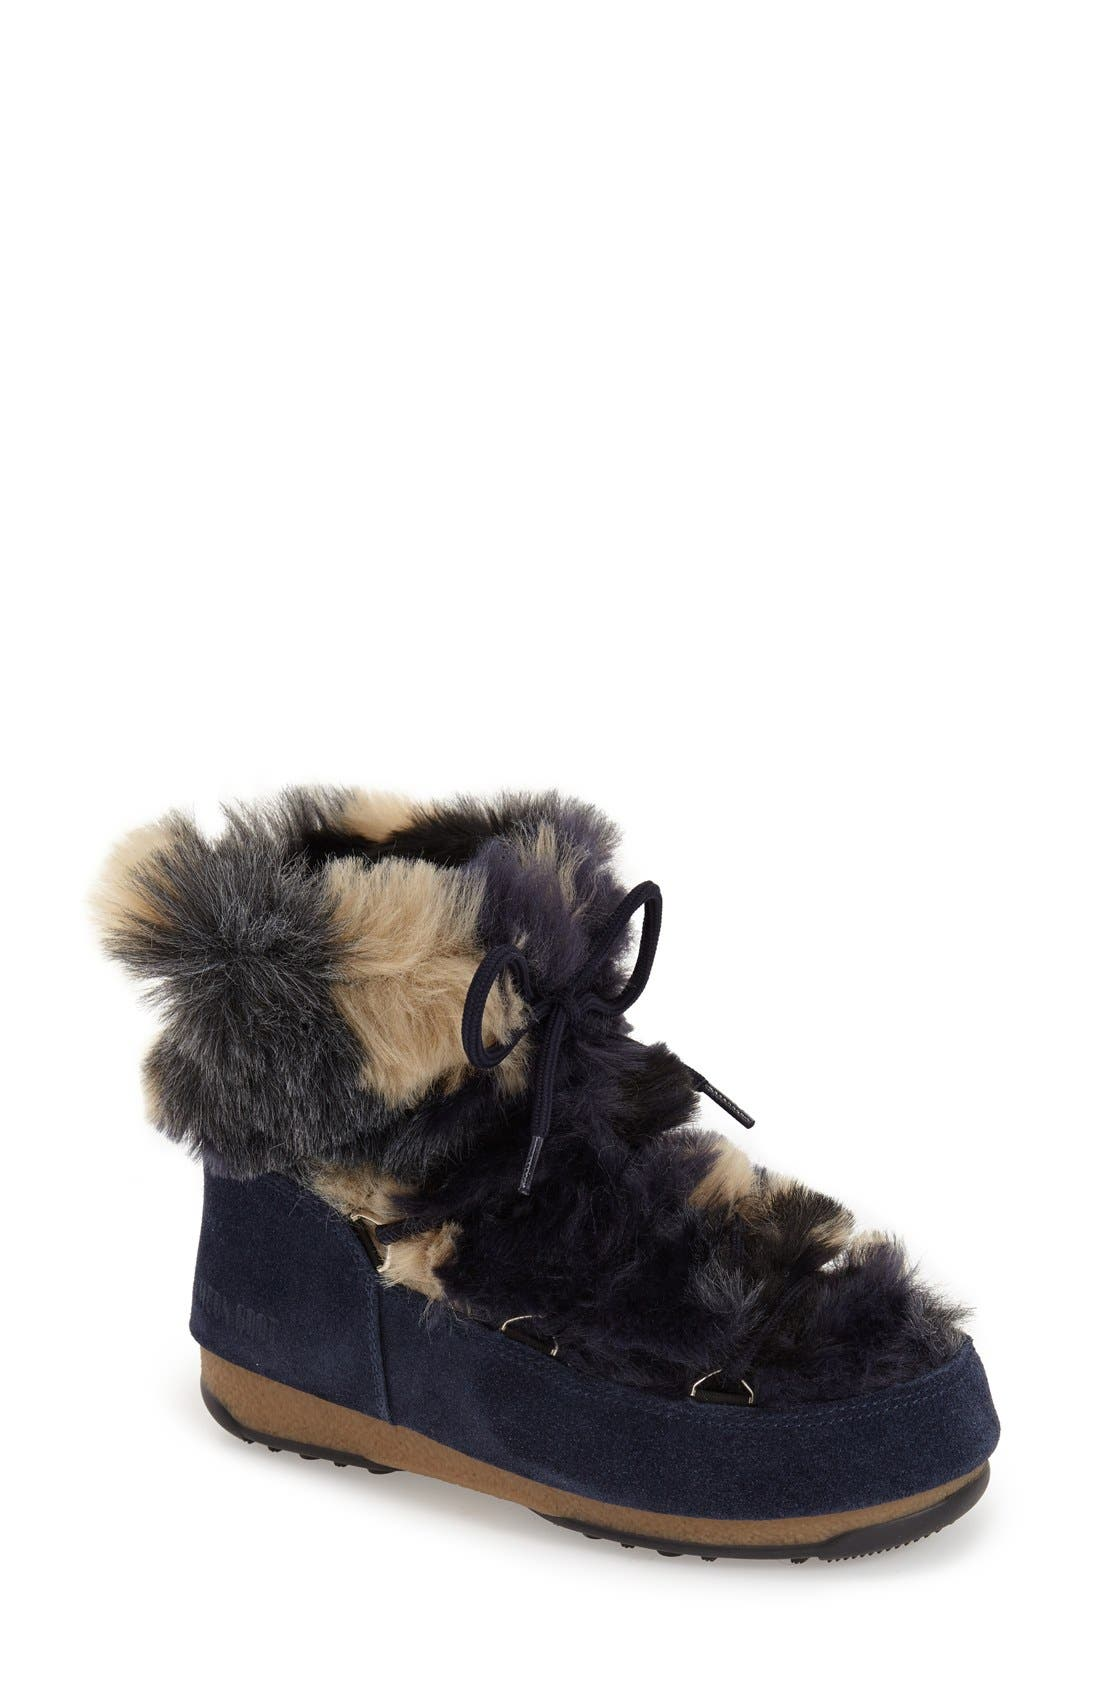 Main Image - Tecnica® Camo Flip Paillette Water Resistant Insulated Moon Boot® with Faux Fur Lining (Women)